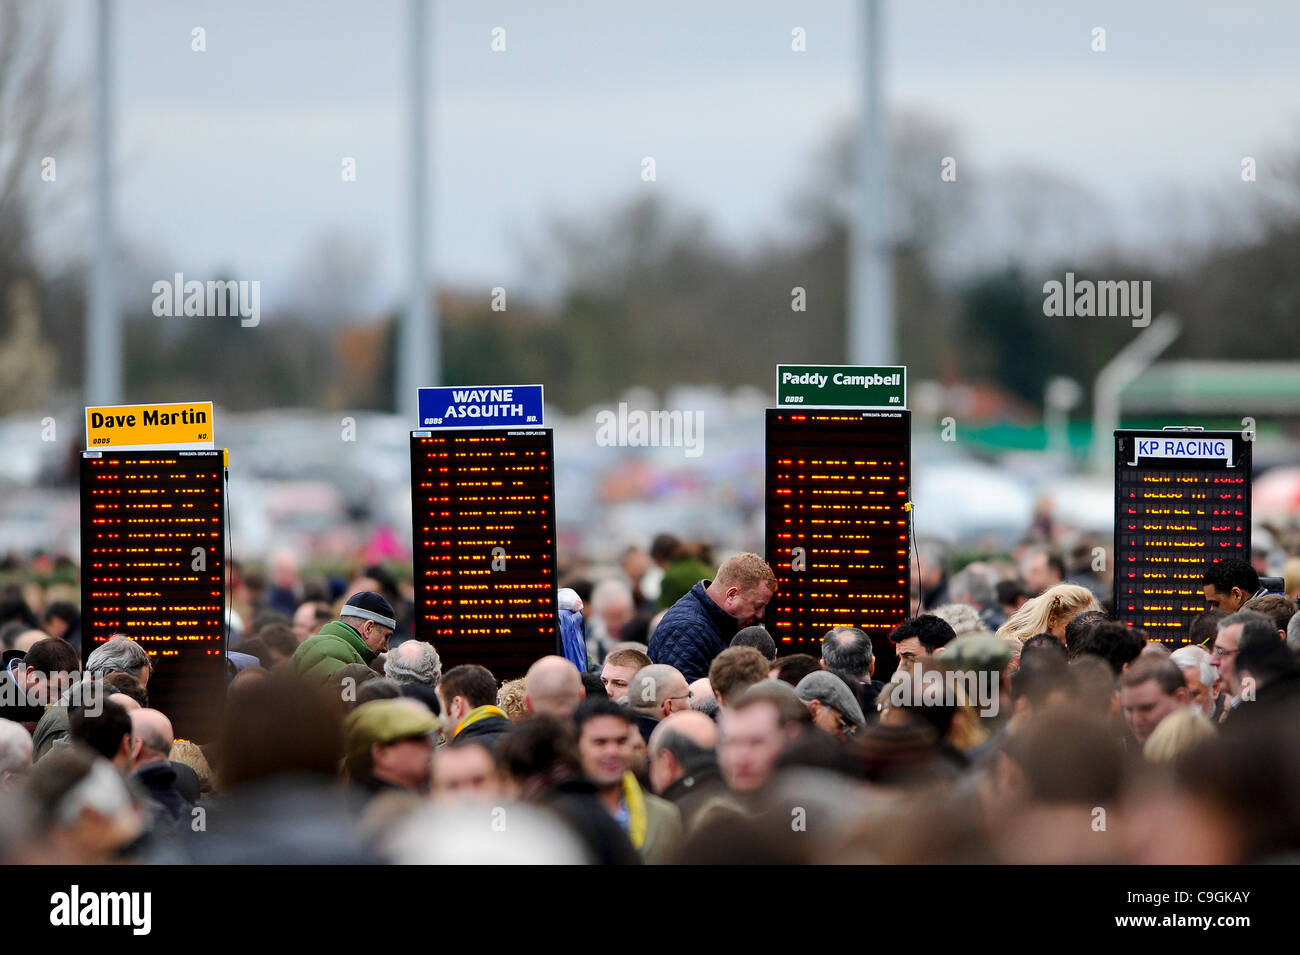 26.12.2011 Sunbury, England. Punters mill during The William Hill Winter Festival on Boxing Day at Kempton Park - Stock Image